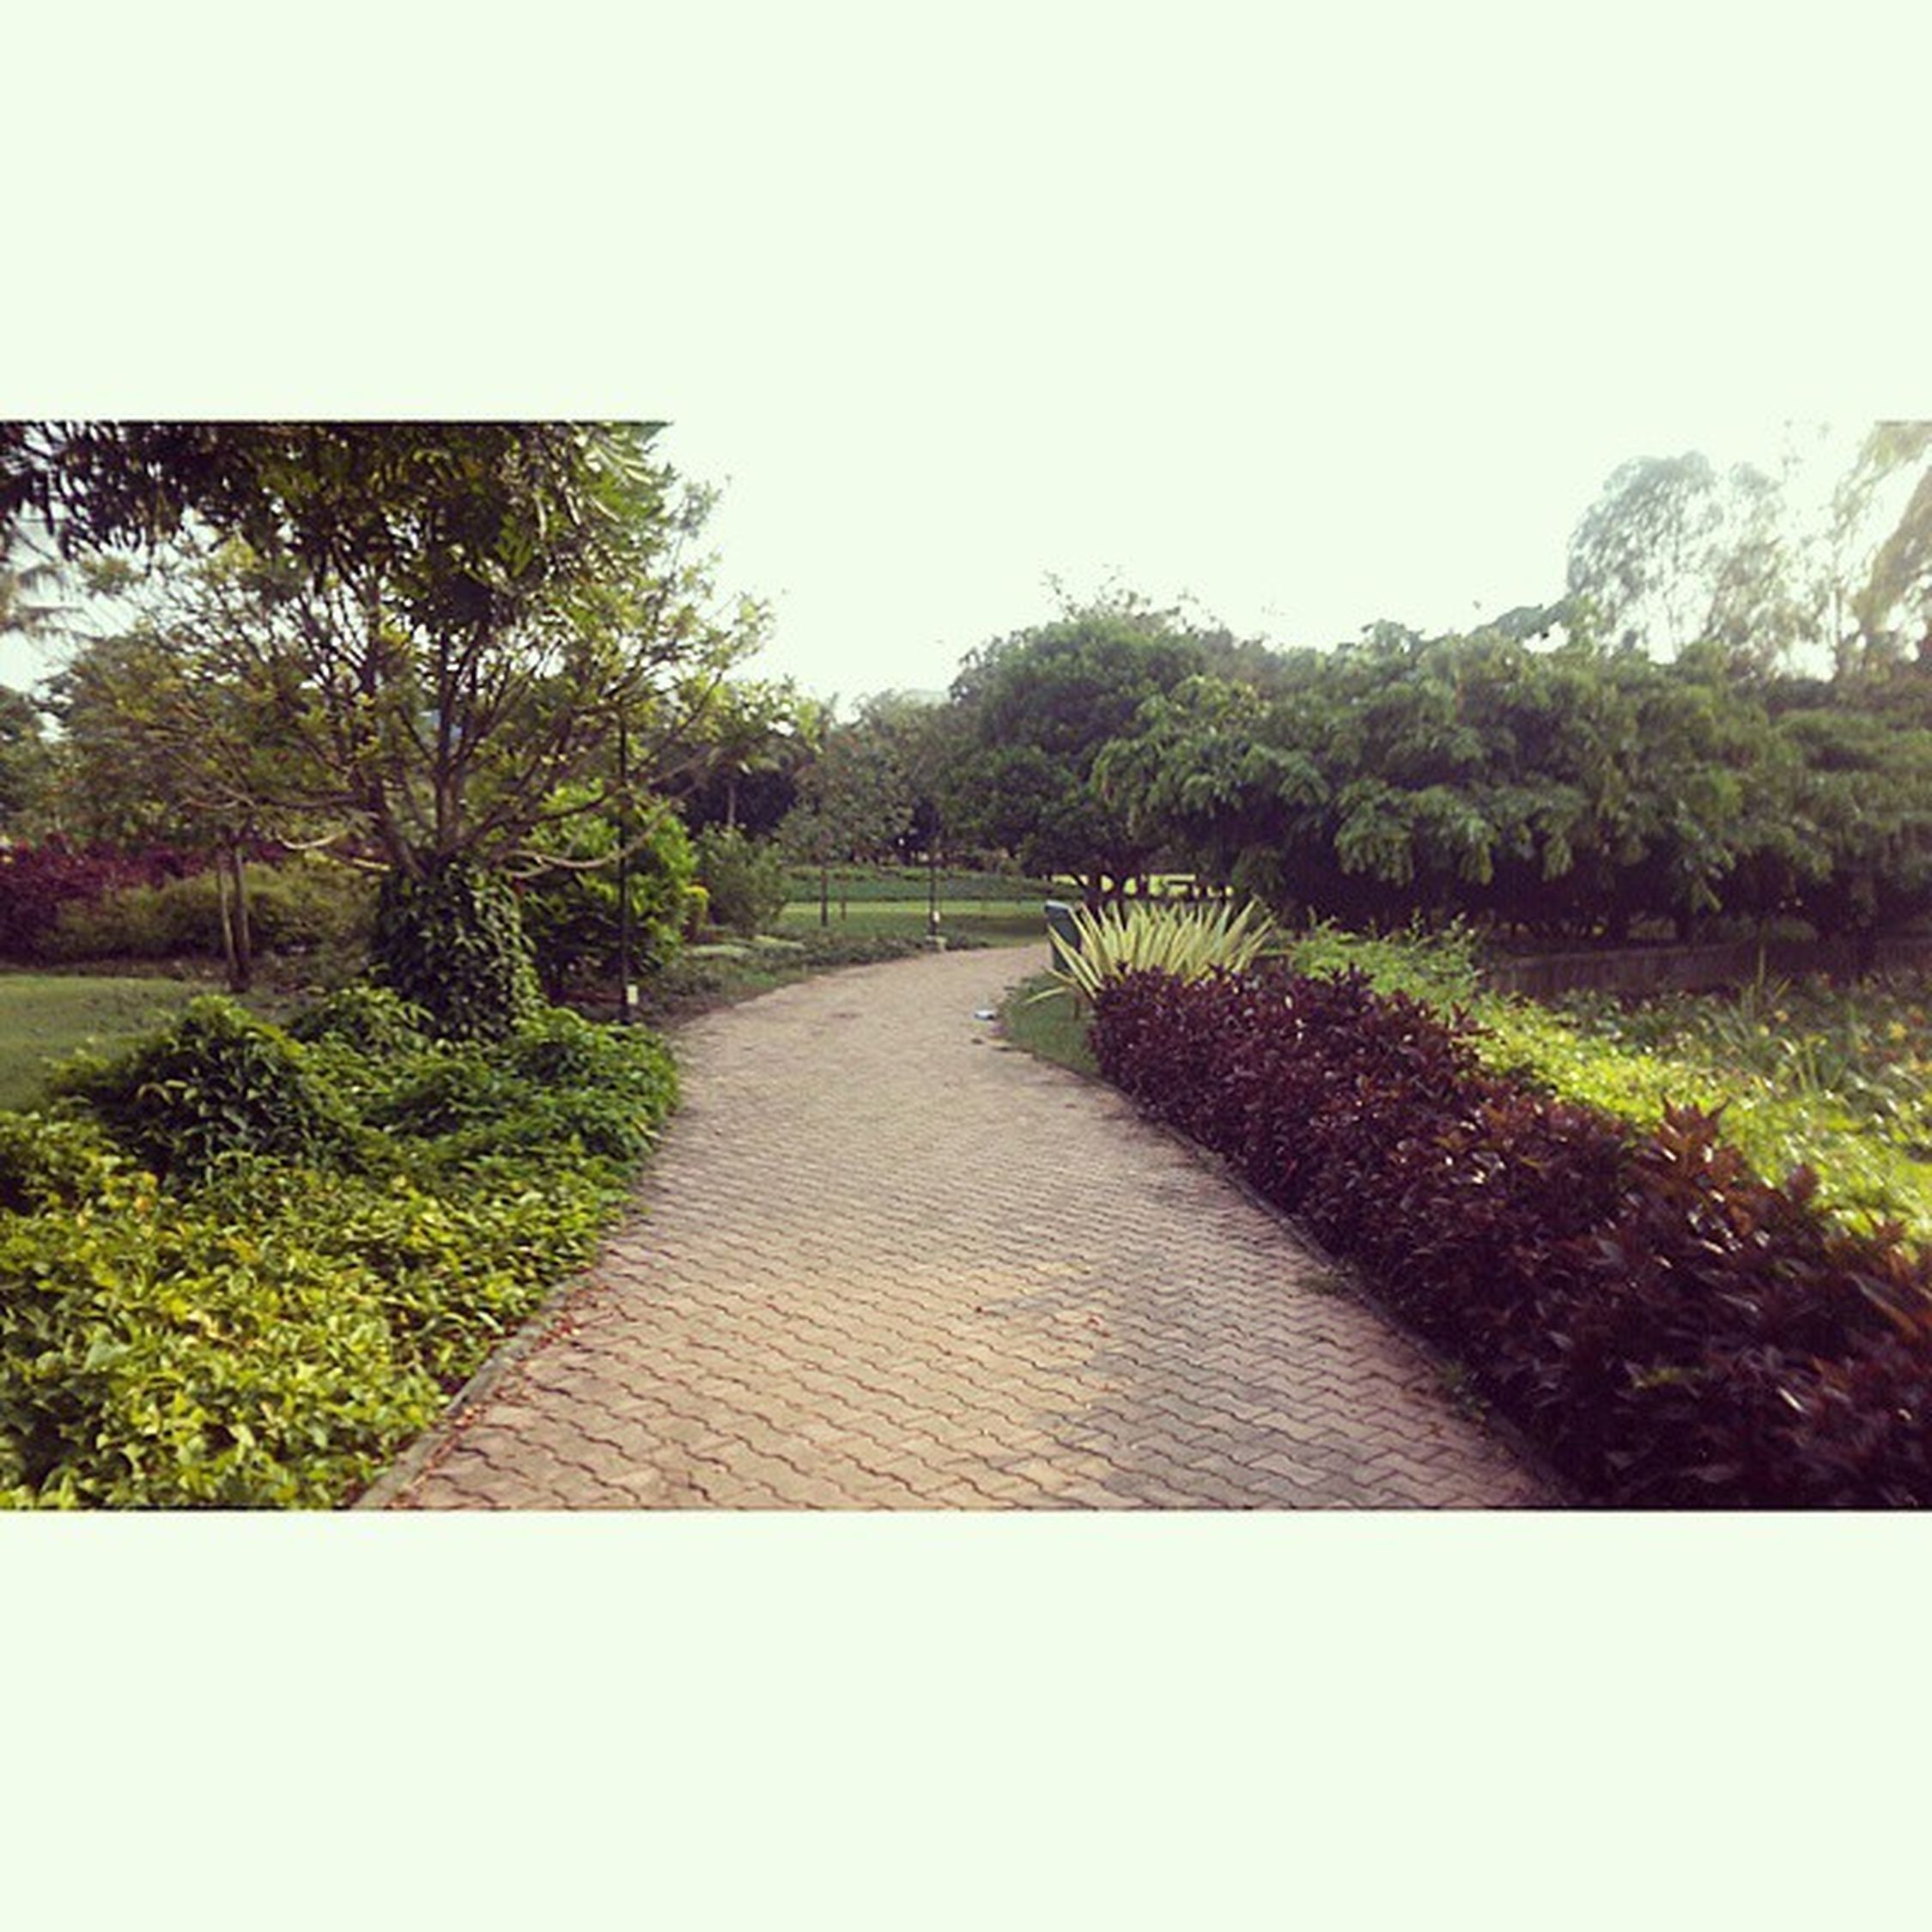 Aditigardens Magarpatta Pune Puneigers Puneinstagrammers Walktrail Nature Tagsforlikes Summer Beautiful Sunrise Blue Flowers Tree Twilight Clouds Beauty Light Cloudporn Photooftheday Love Green Skylovers Dusk Weather day android mothernature